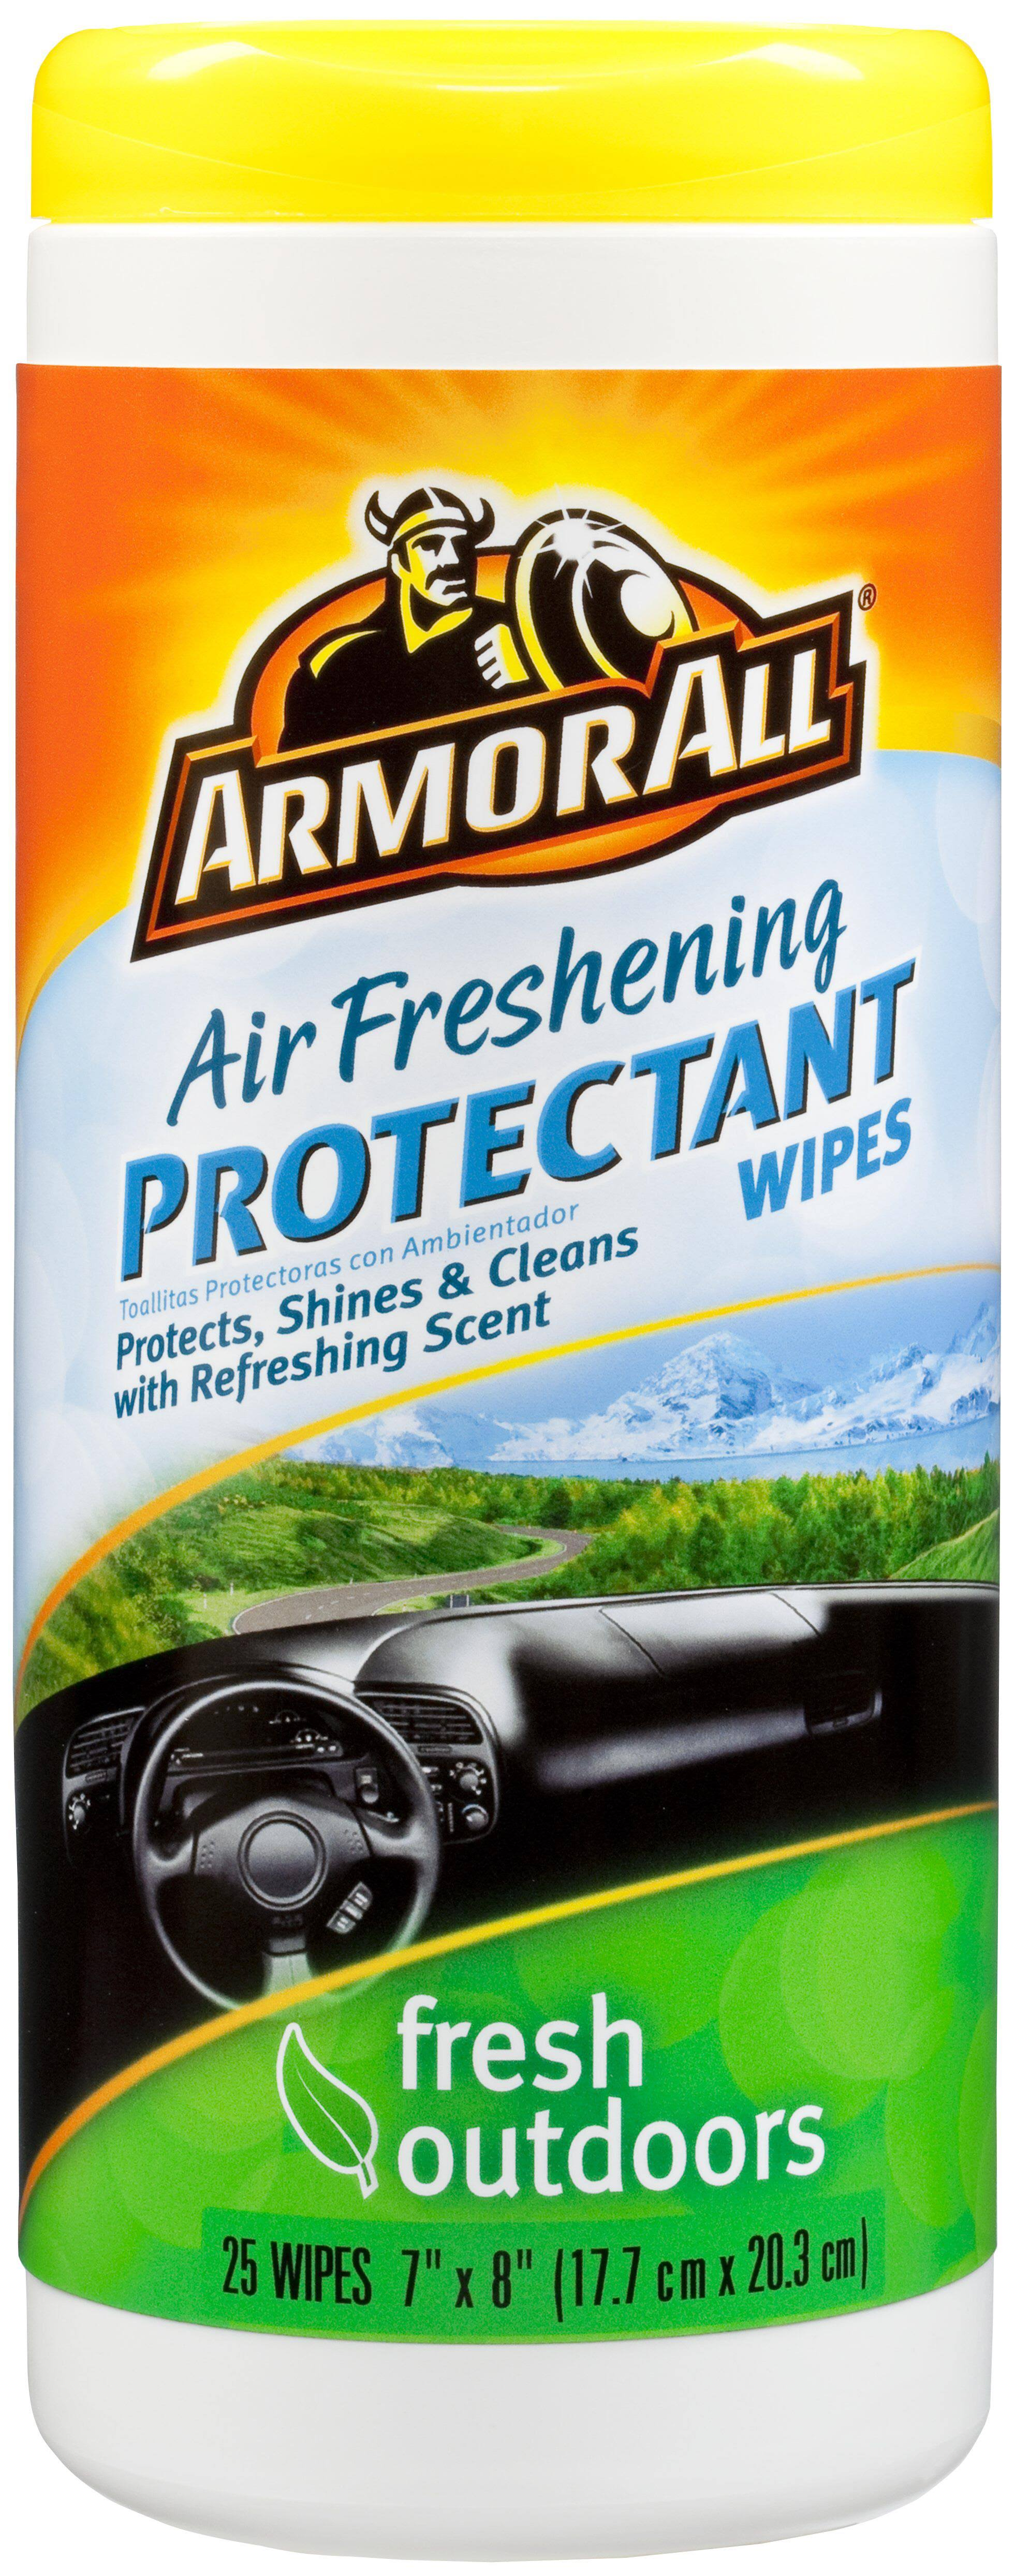 Armour All Protectant Wipes - Fresh Outdoors, 25ct